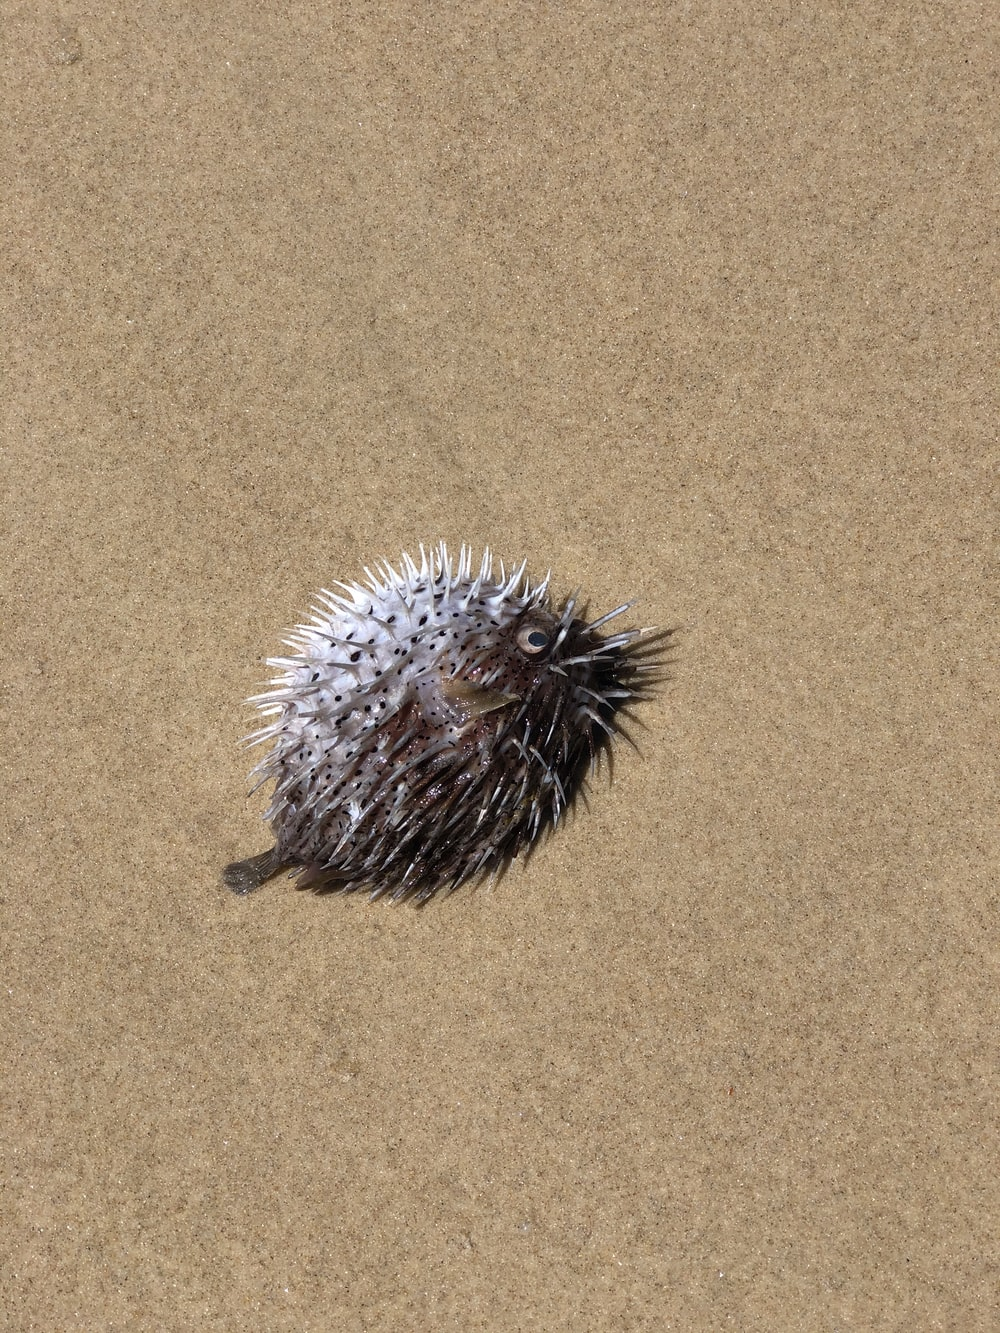 black and white hedgehog on brown sand